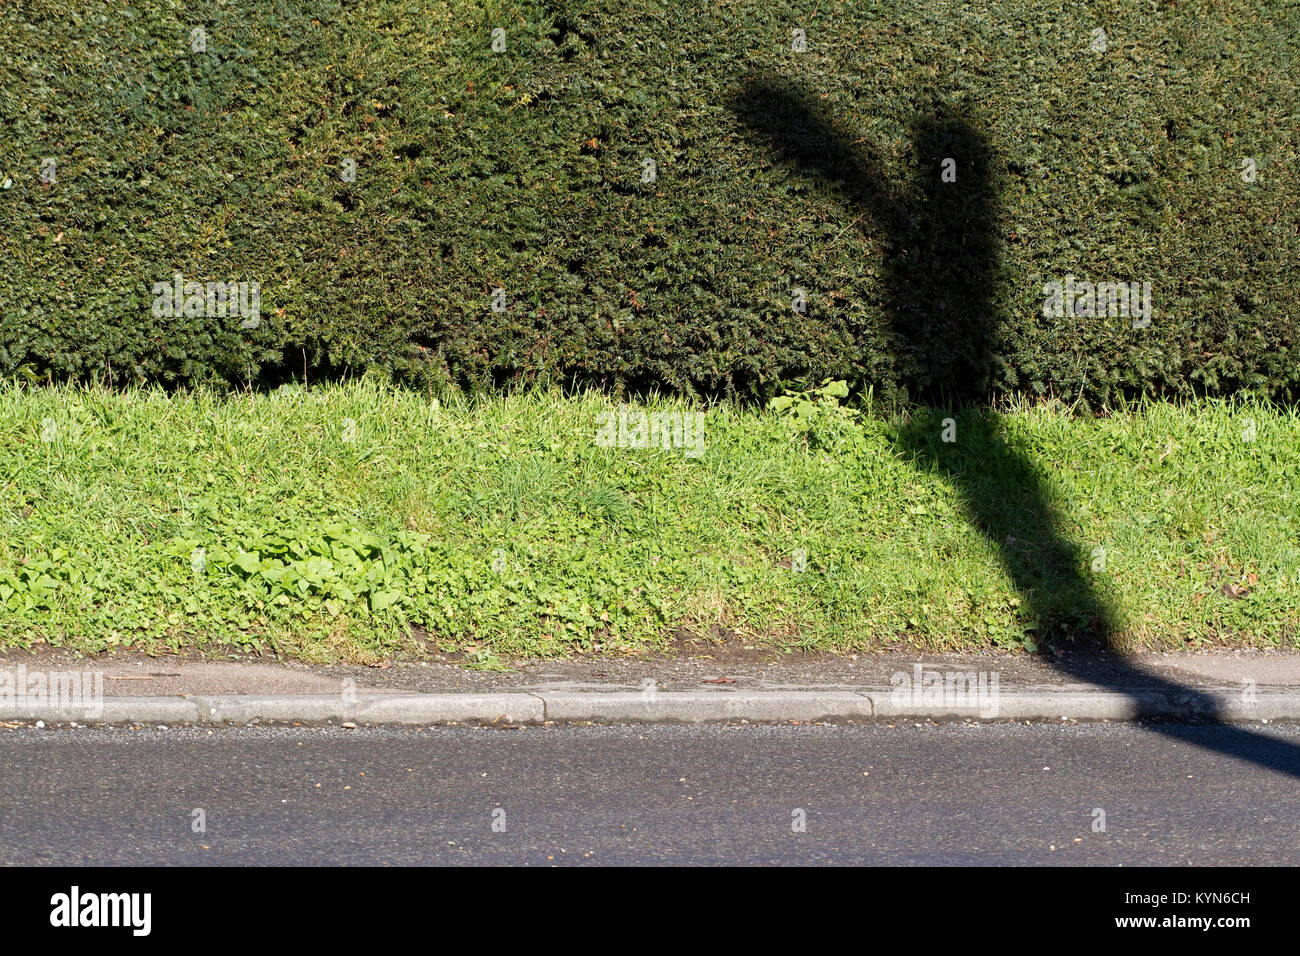 Odd shaped shadow being cast by a street light on a hedge and grass verge - Stock Image